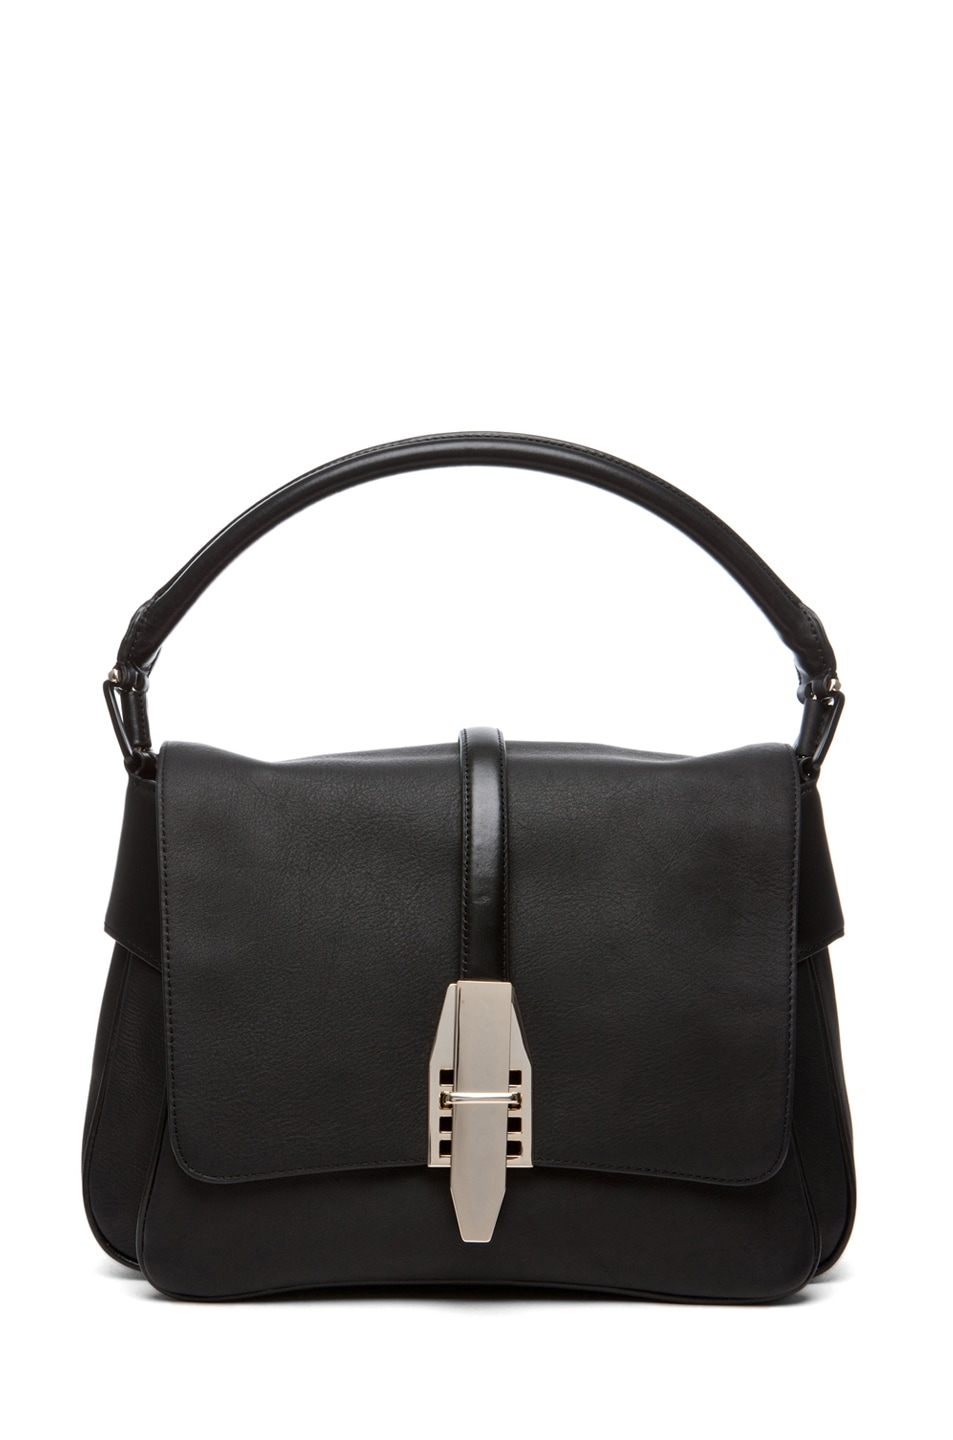 Image 1 of Theyskens' Theory Willa Azia Leather Bag in Black